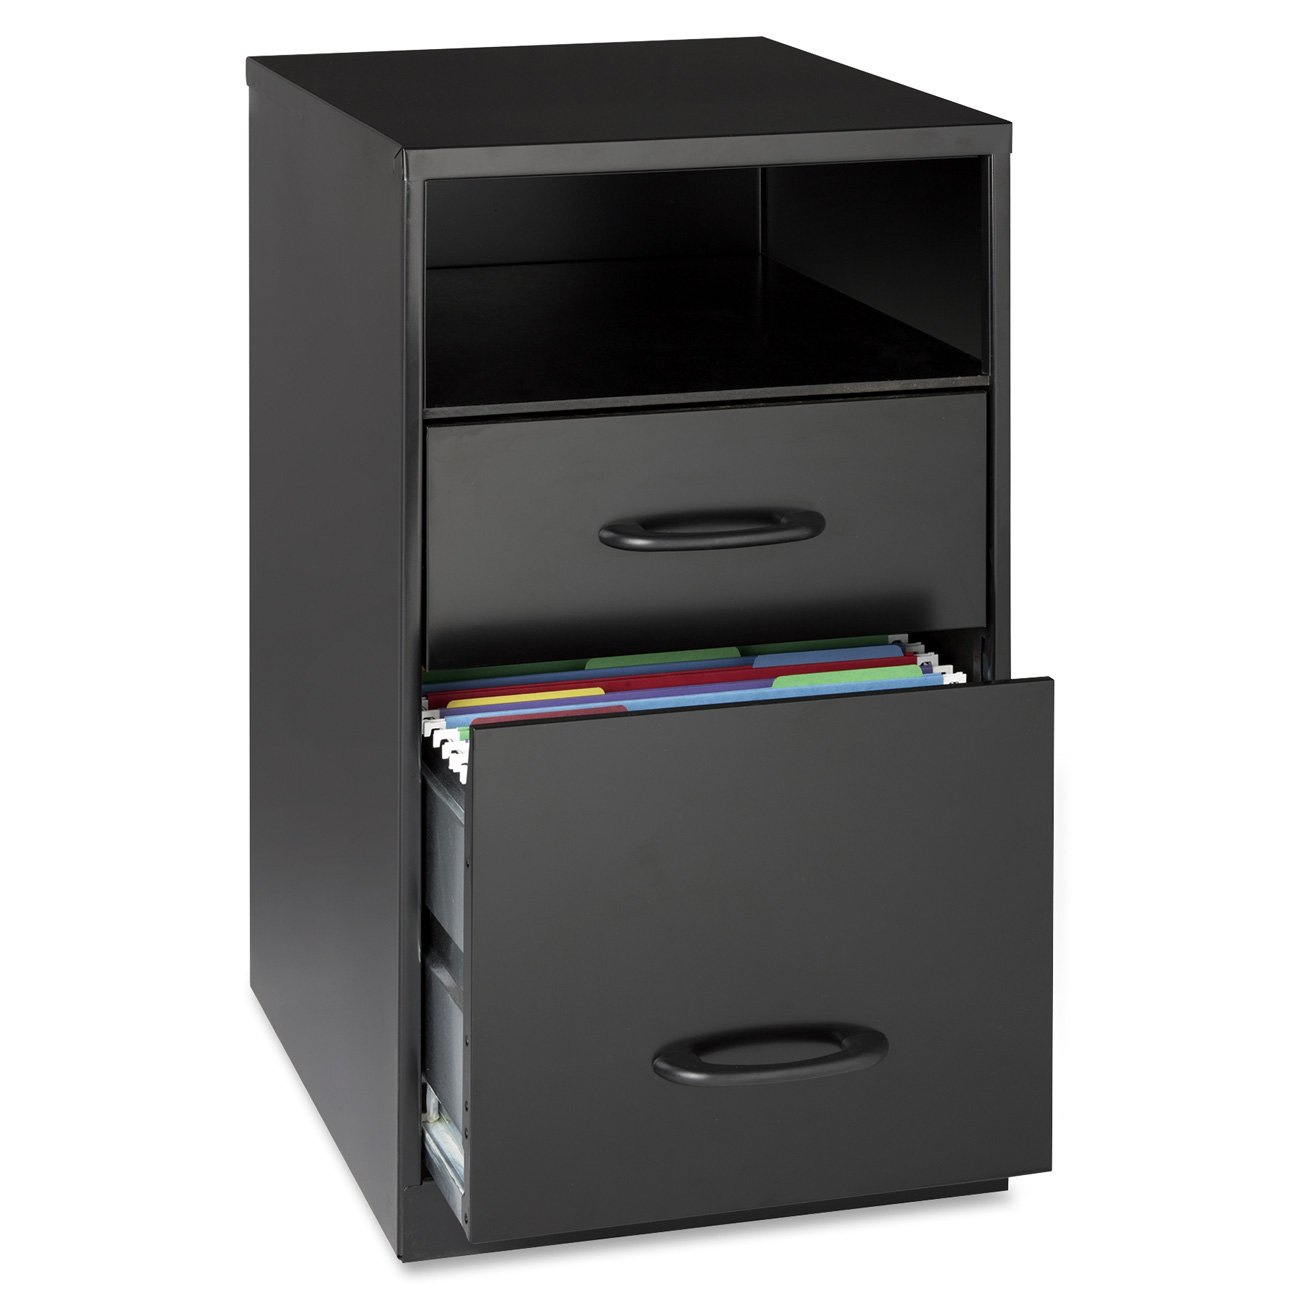 office file racks designs. Amazon.com: Lorell 18505 2-Drawer Mobile File Cabinet With Shelf, 18-Inch: Home \u0026 Kitchen Office Racks Designs